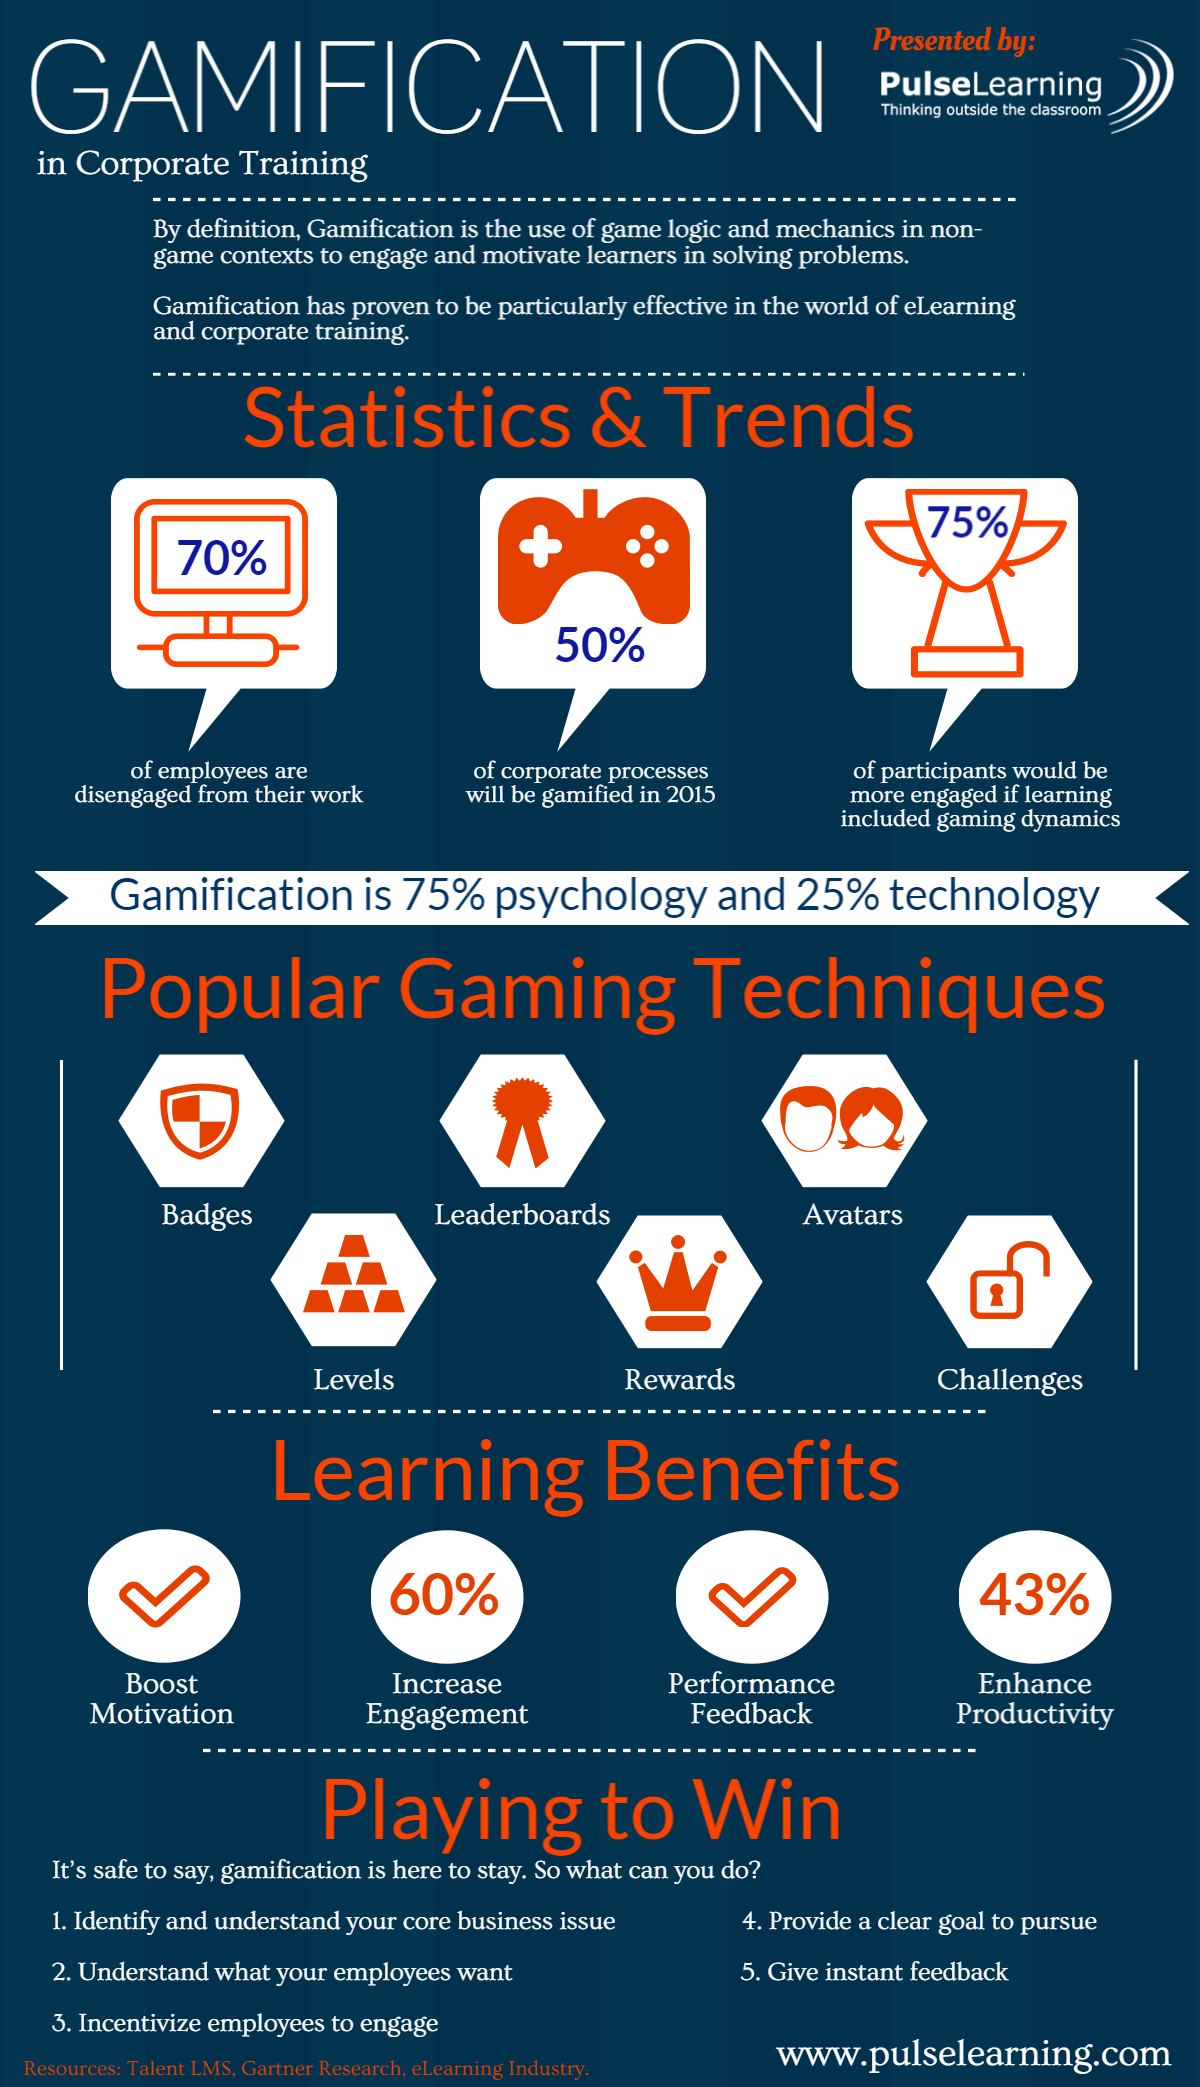 Gamification in Corporate Training Infographic